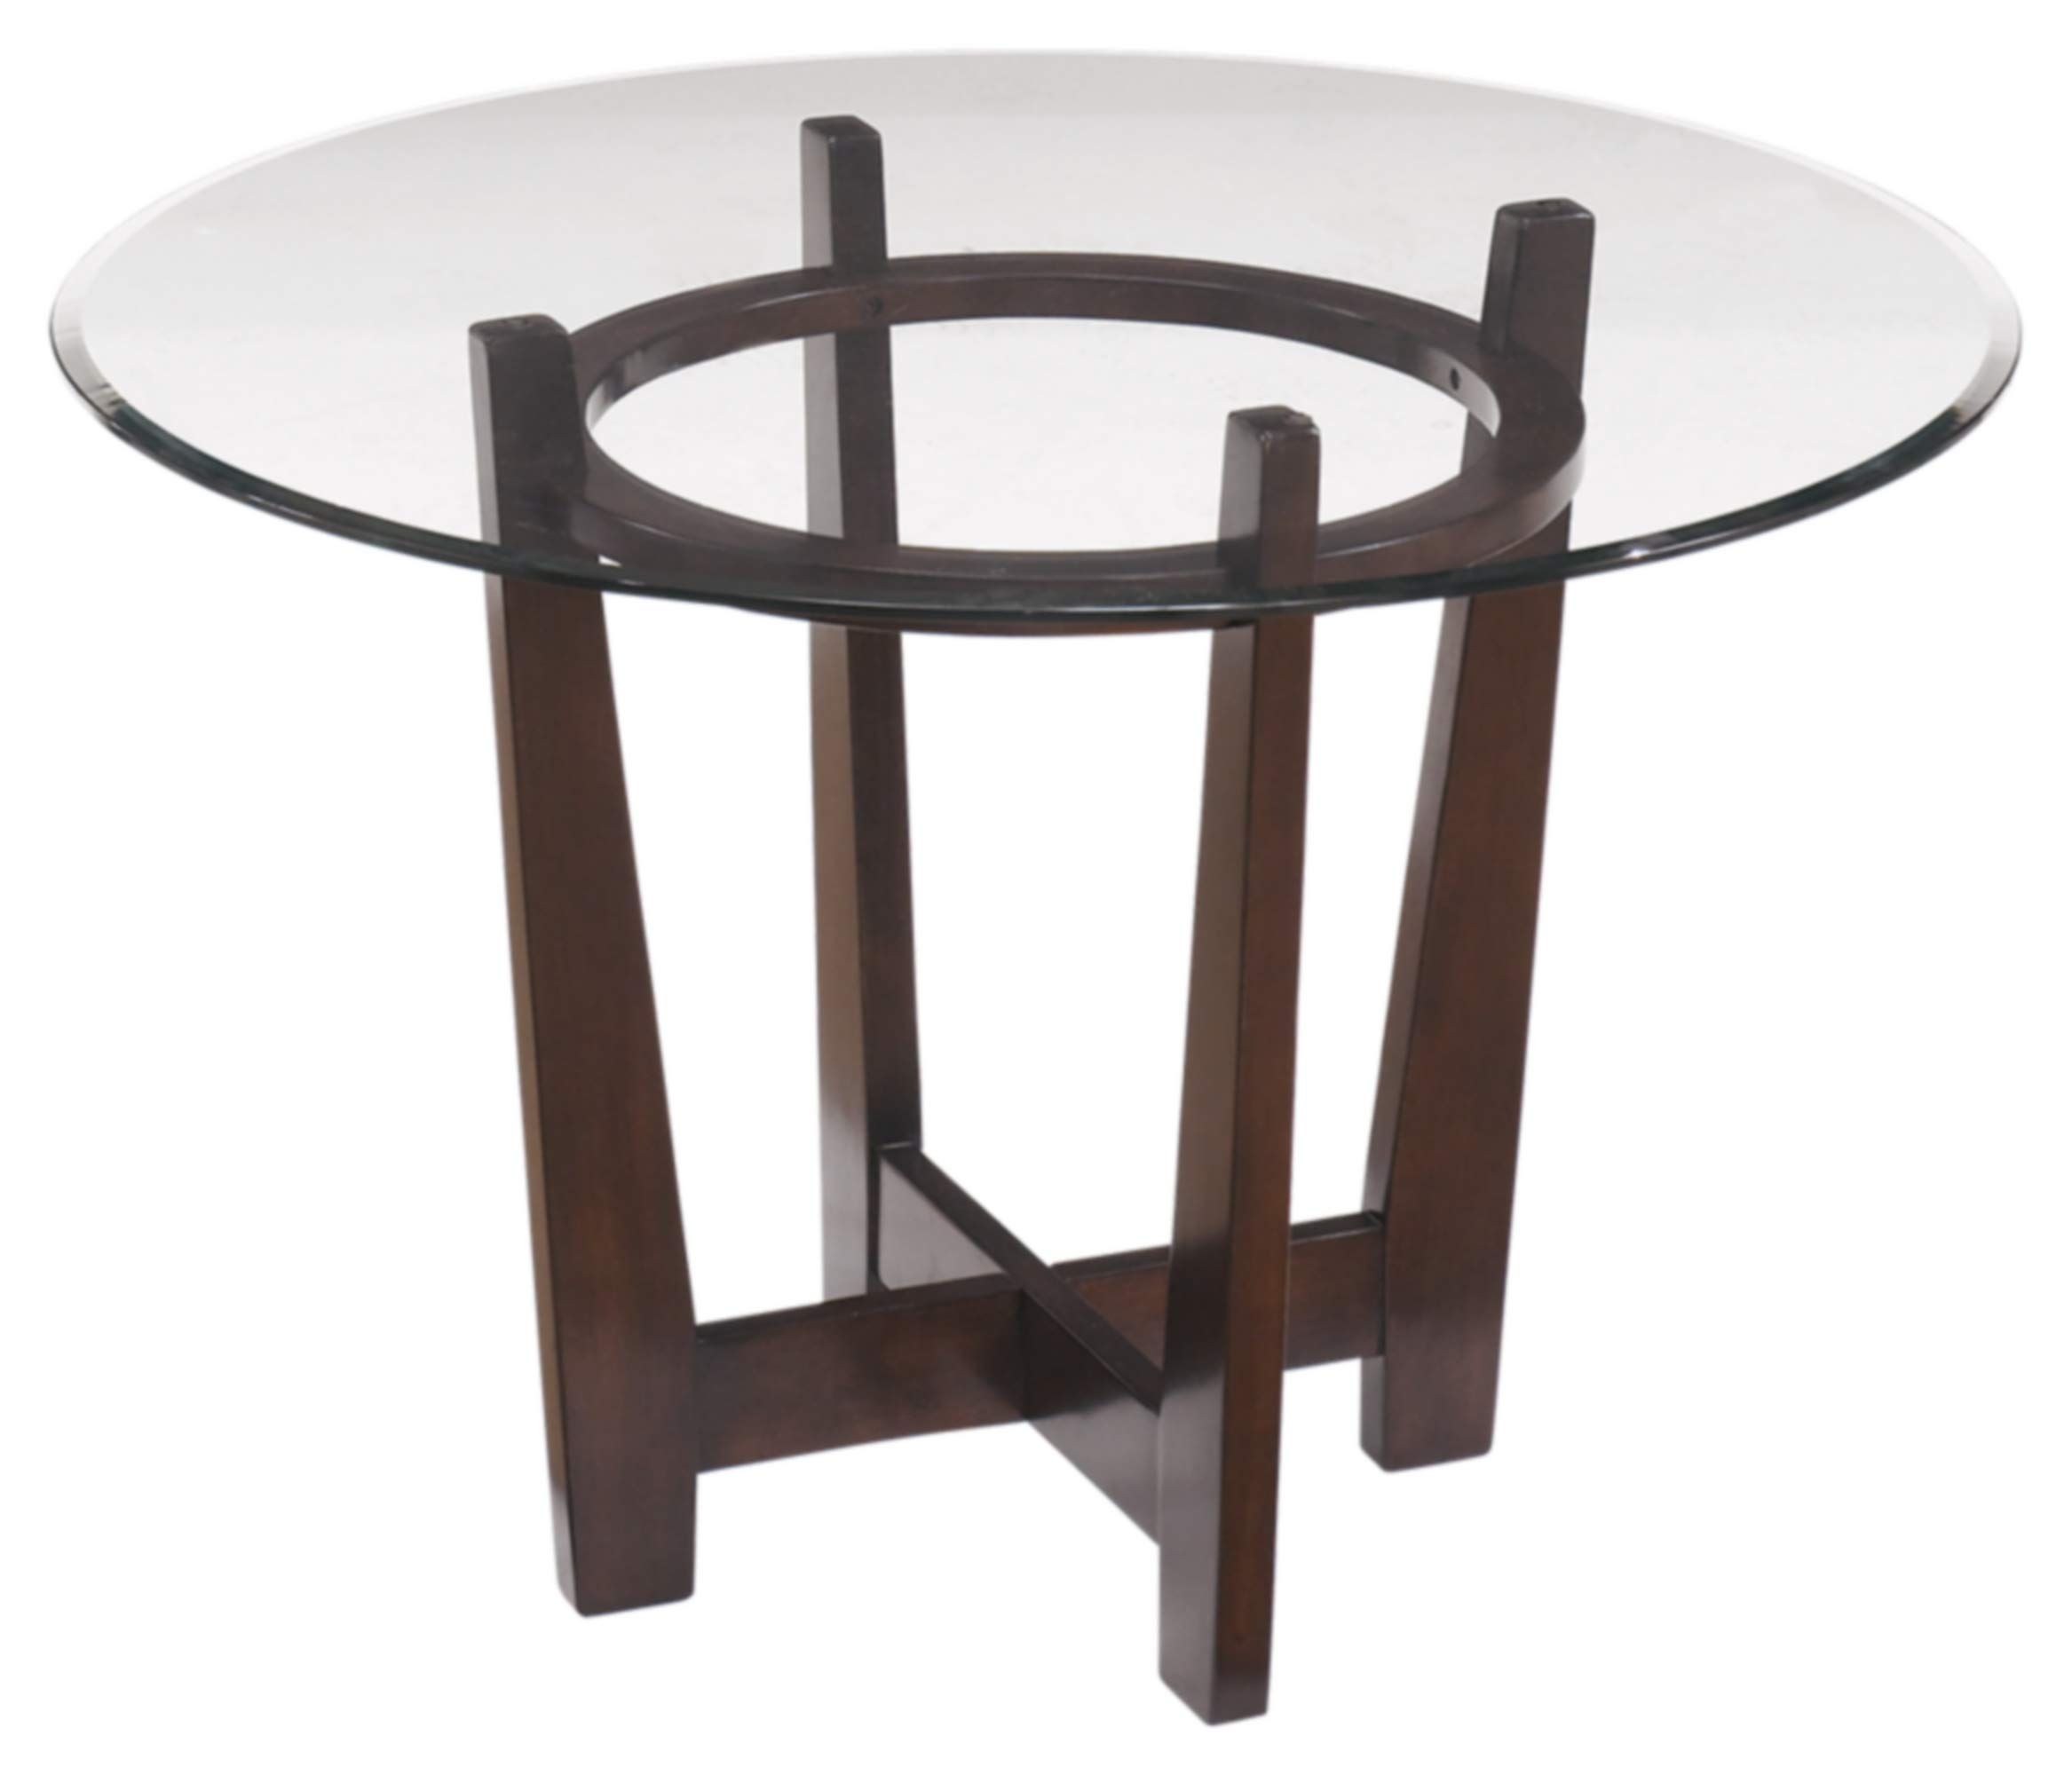 Ashley Furniture Signature Design - Charrell Dining Room Table - Glass Top - Round - Medium Brown by Signature Design by Ashley